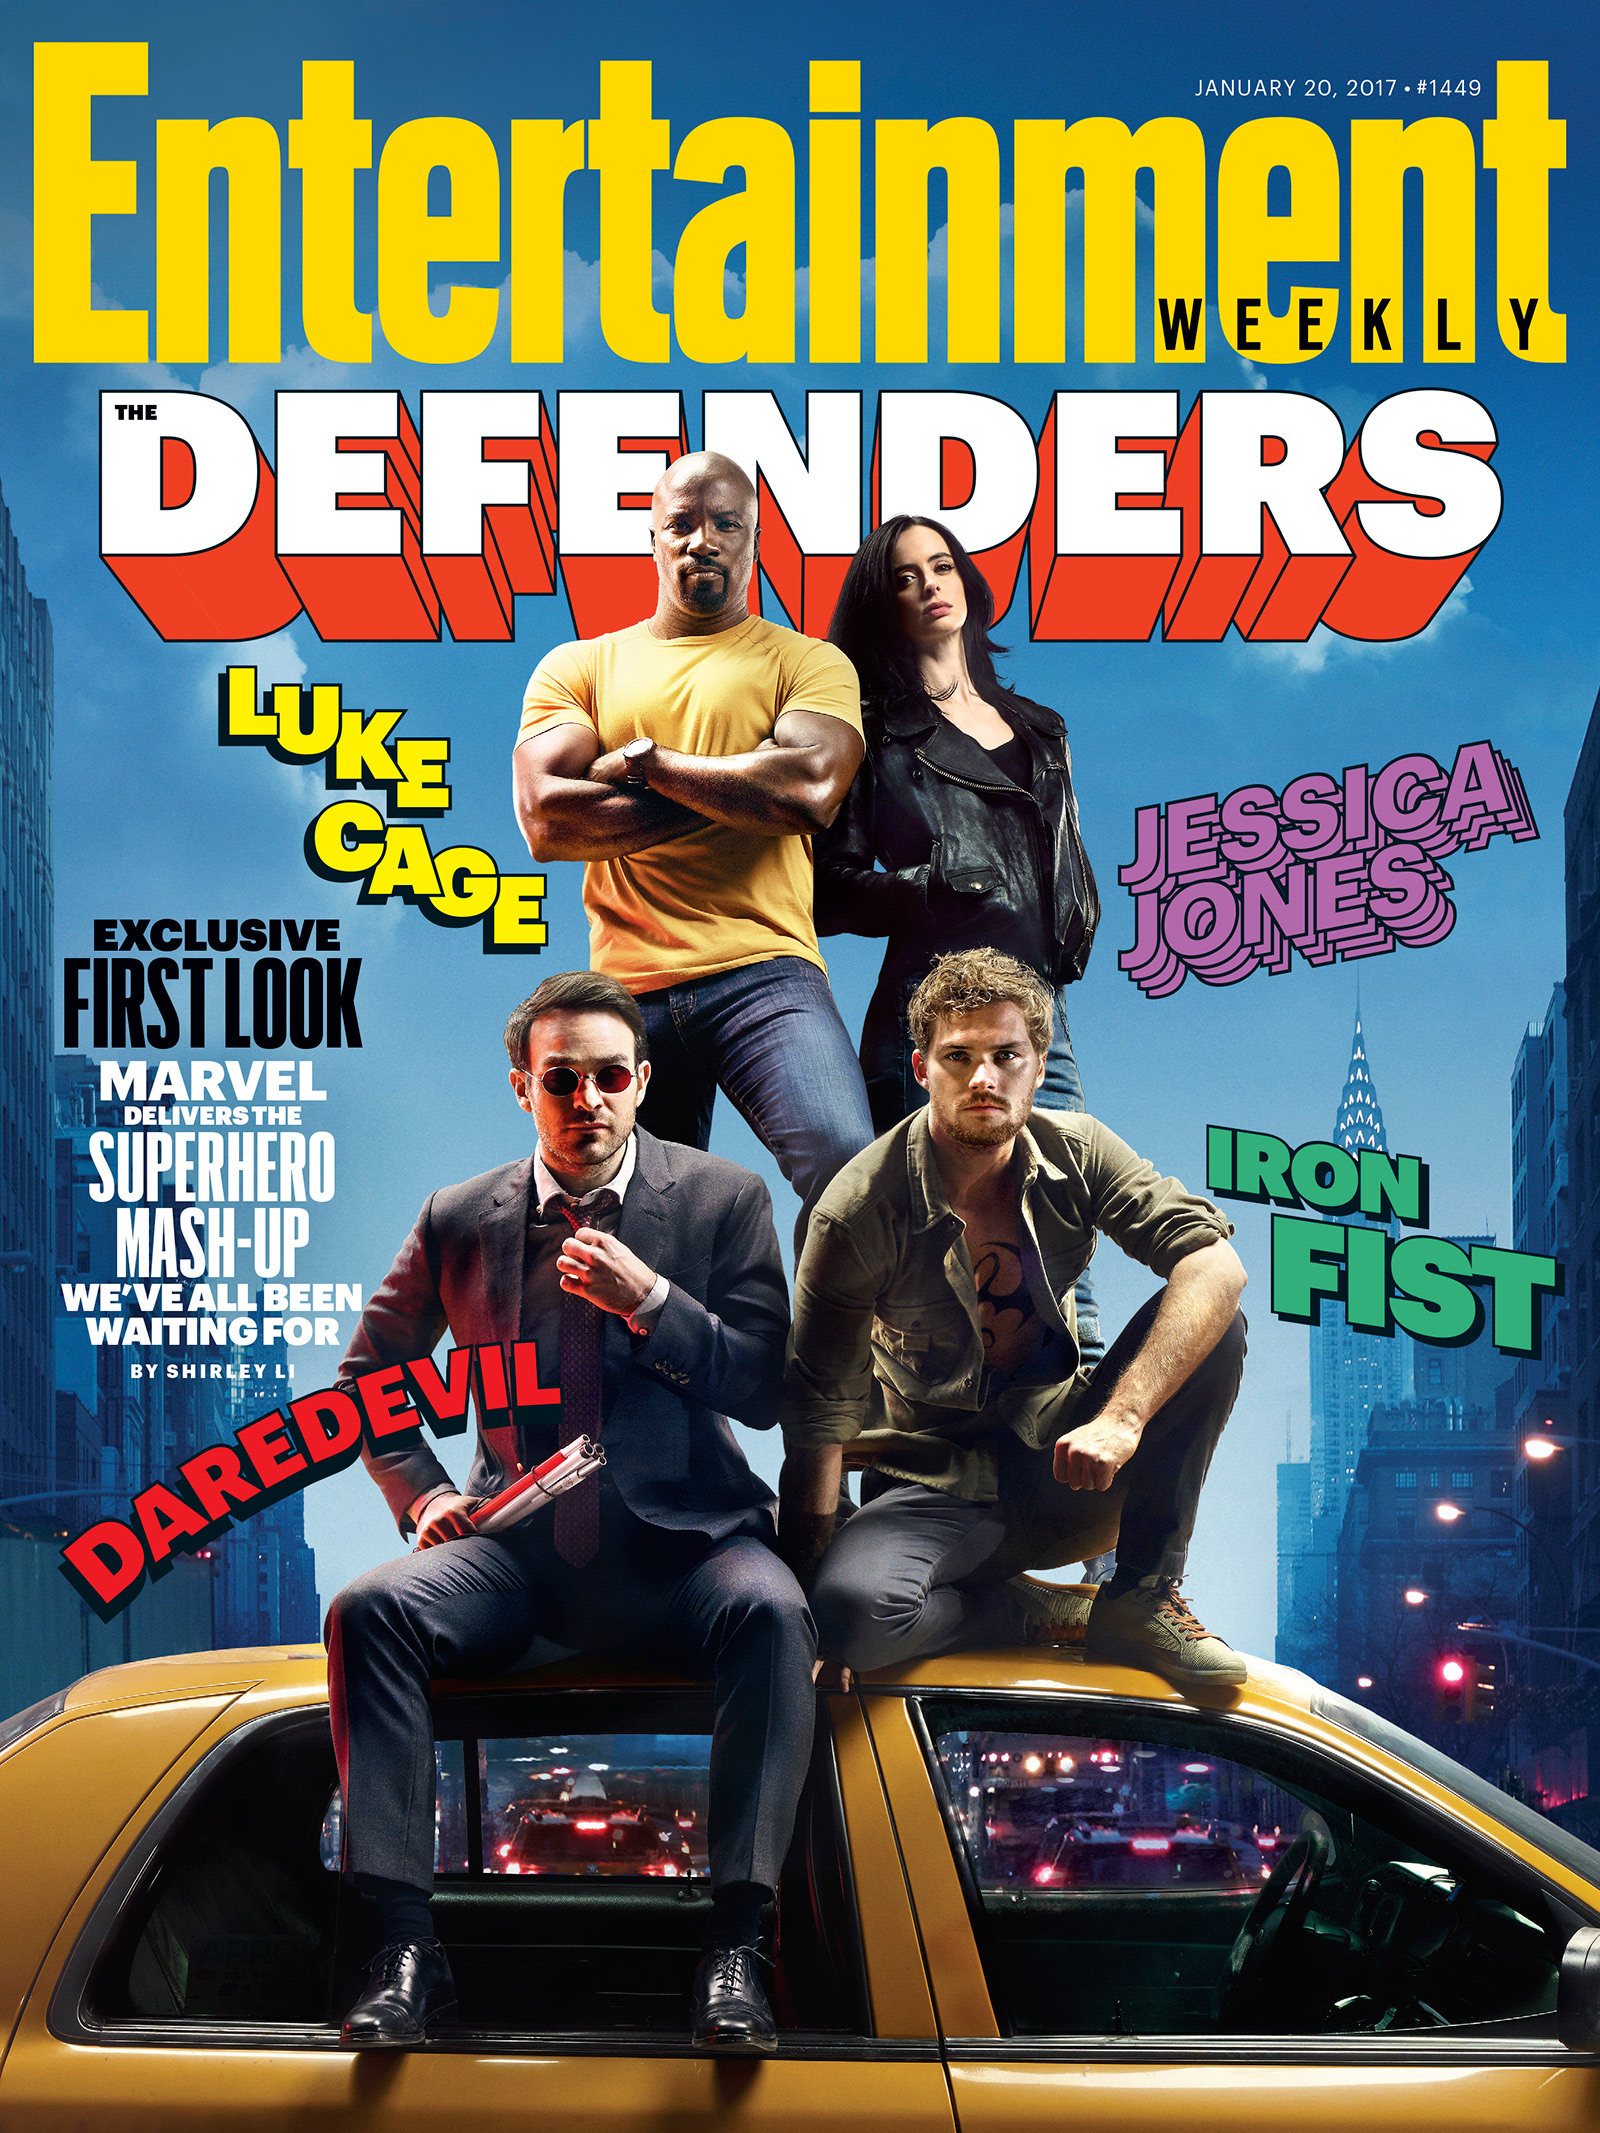 EW cover featuring the first look at The Defenders